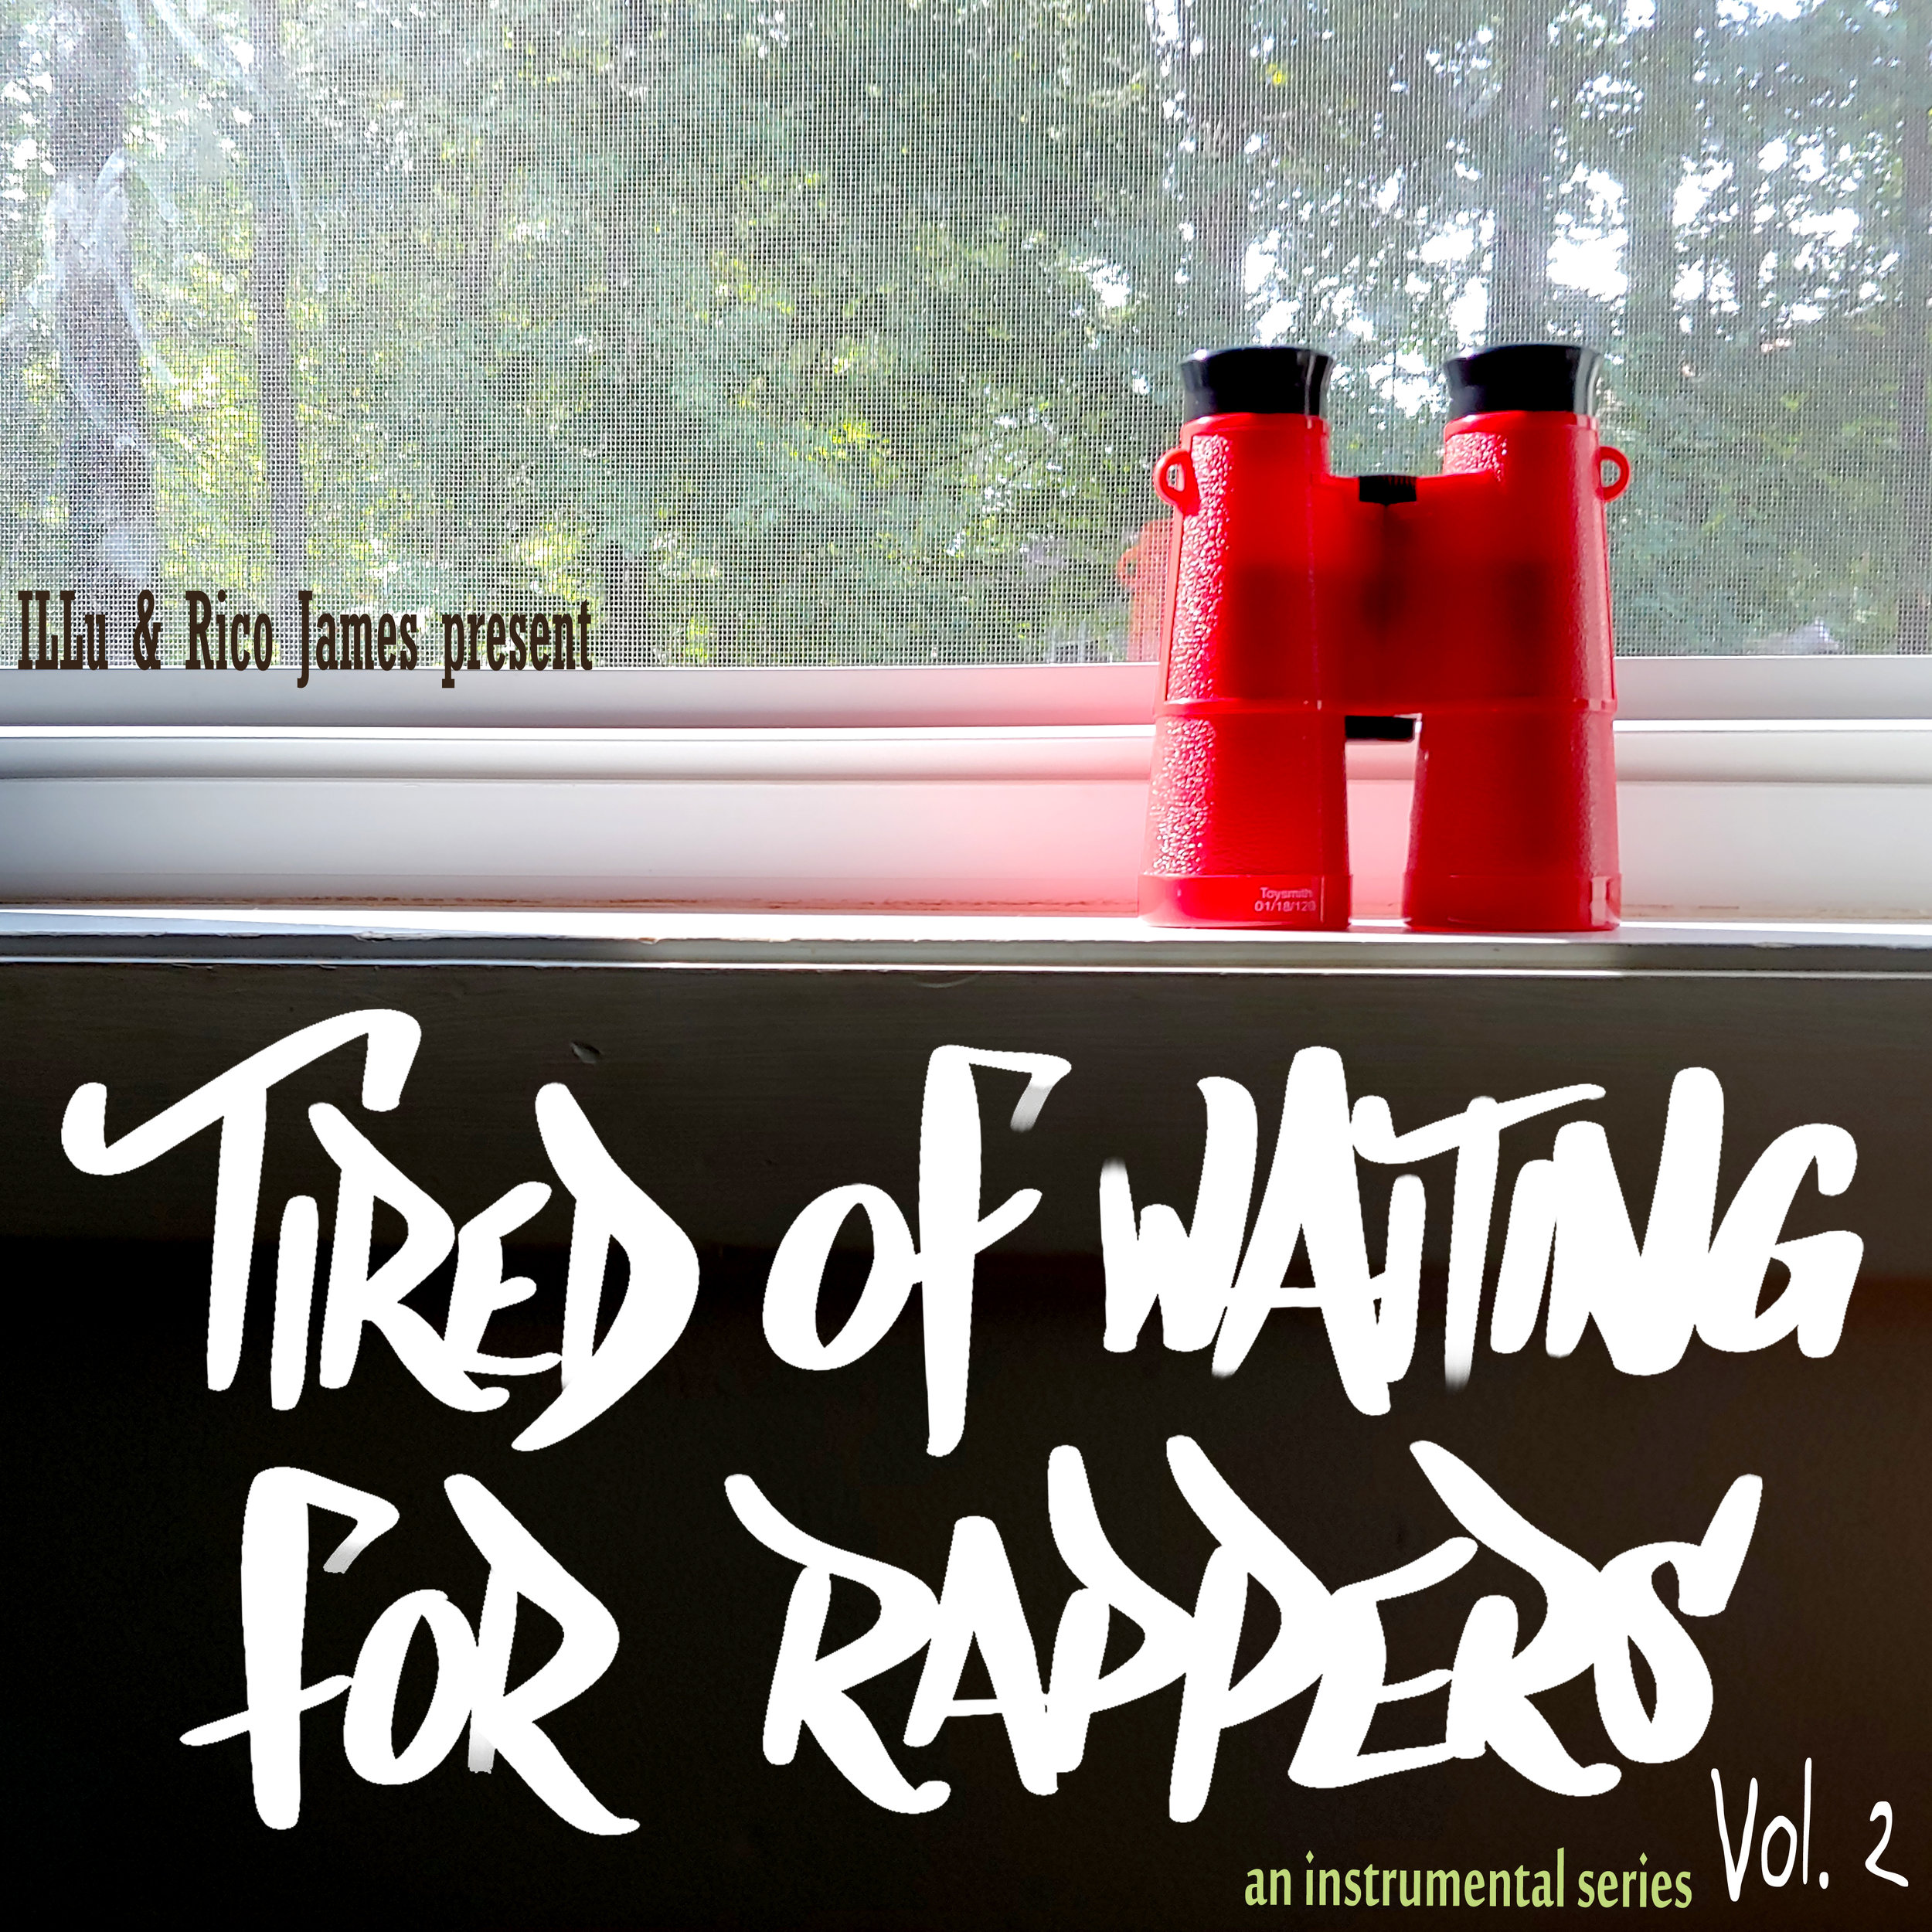 Tired Of Waiting For Rappers Vol. 2 - by ILLu & Rico James